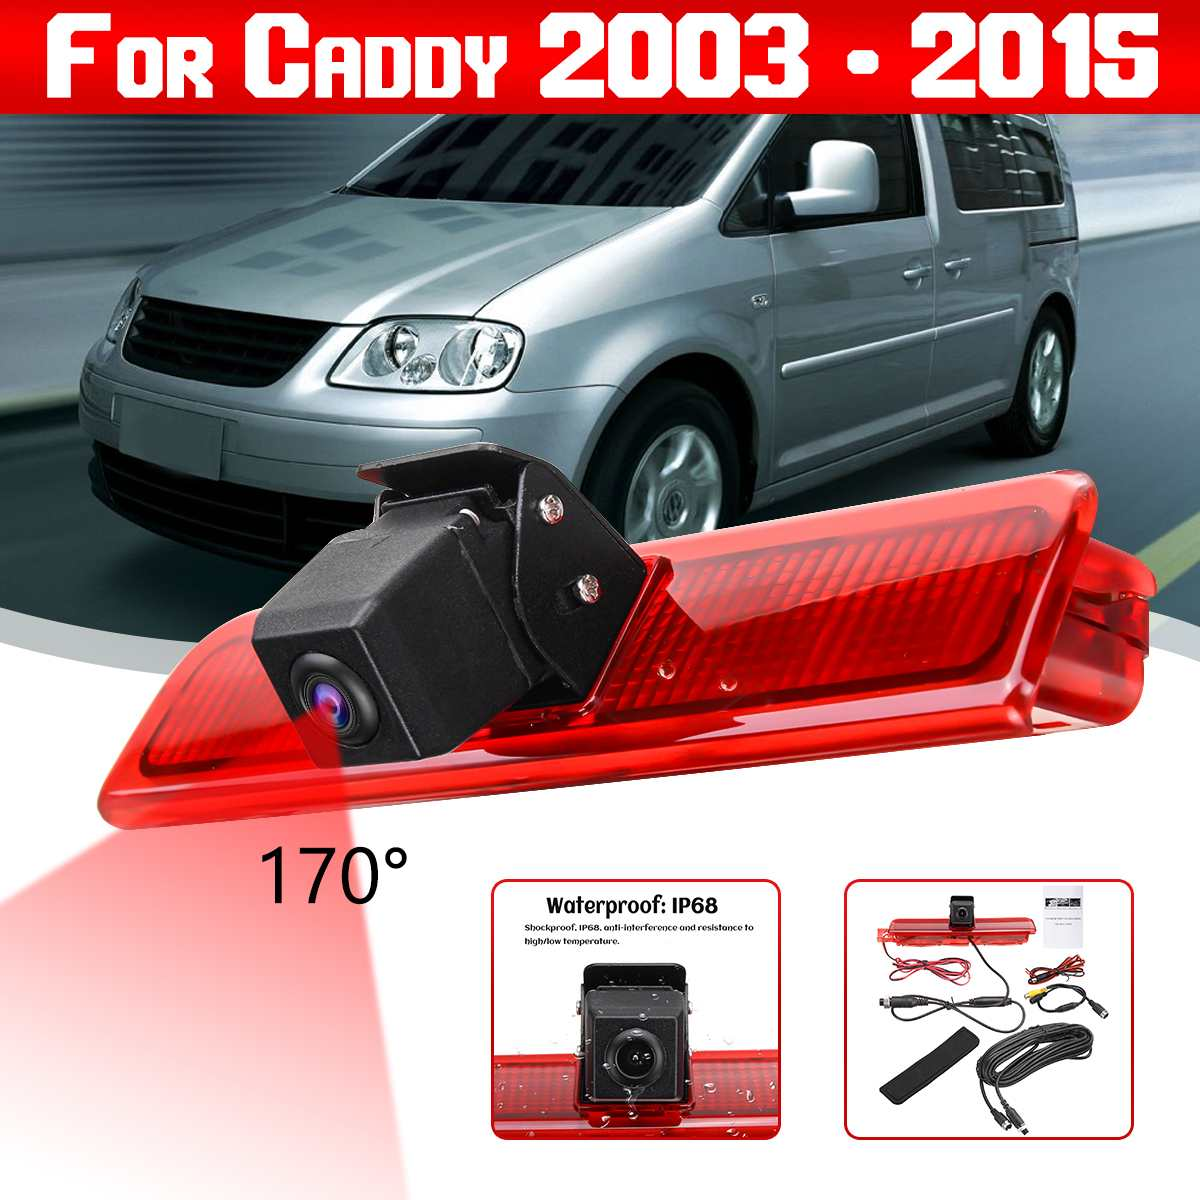 Car Rear View Camera Reverse Parking Backup 3rd Brake Light Night Vision Waterproof Monitor For VW Caddy 2003 - 2015